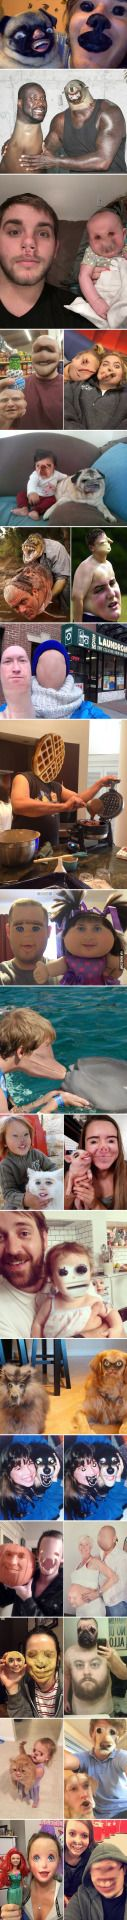 When Face Swap App Goes Terribly Wrong #lol #funny #rofl #memes #lmao #hilarious #cute